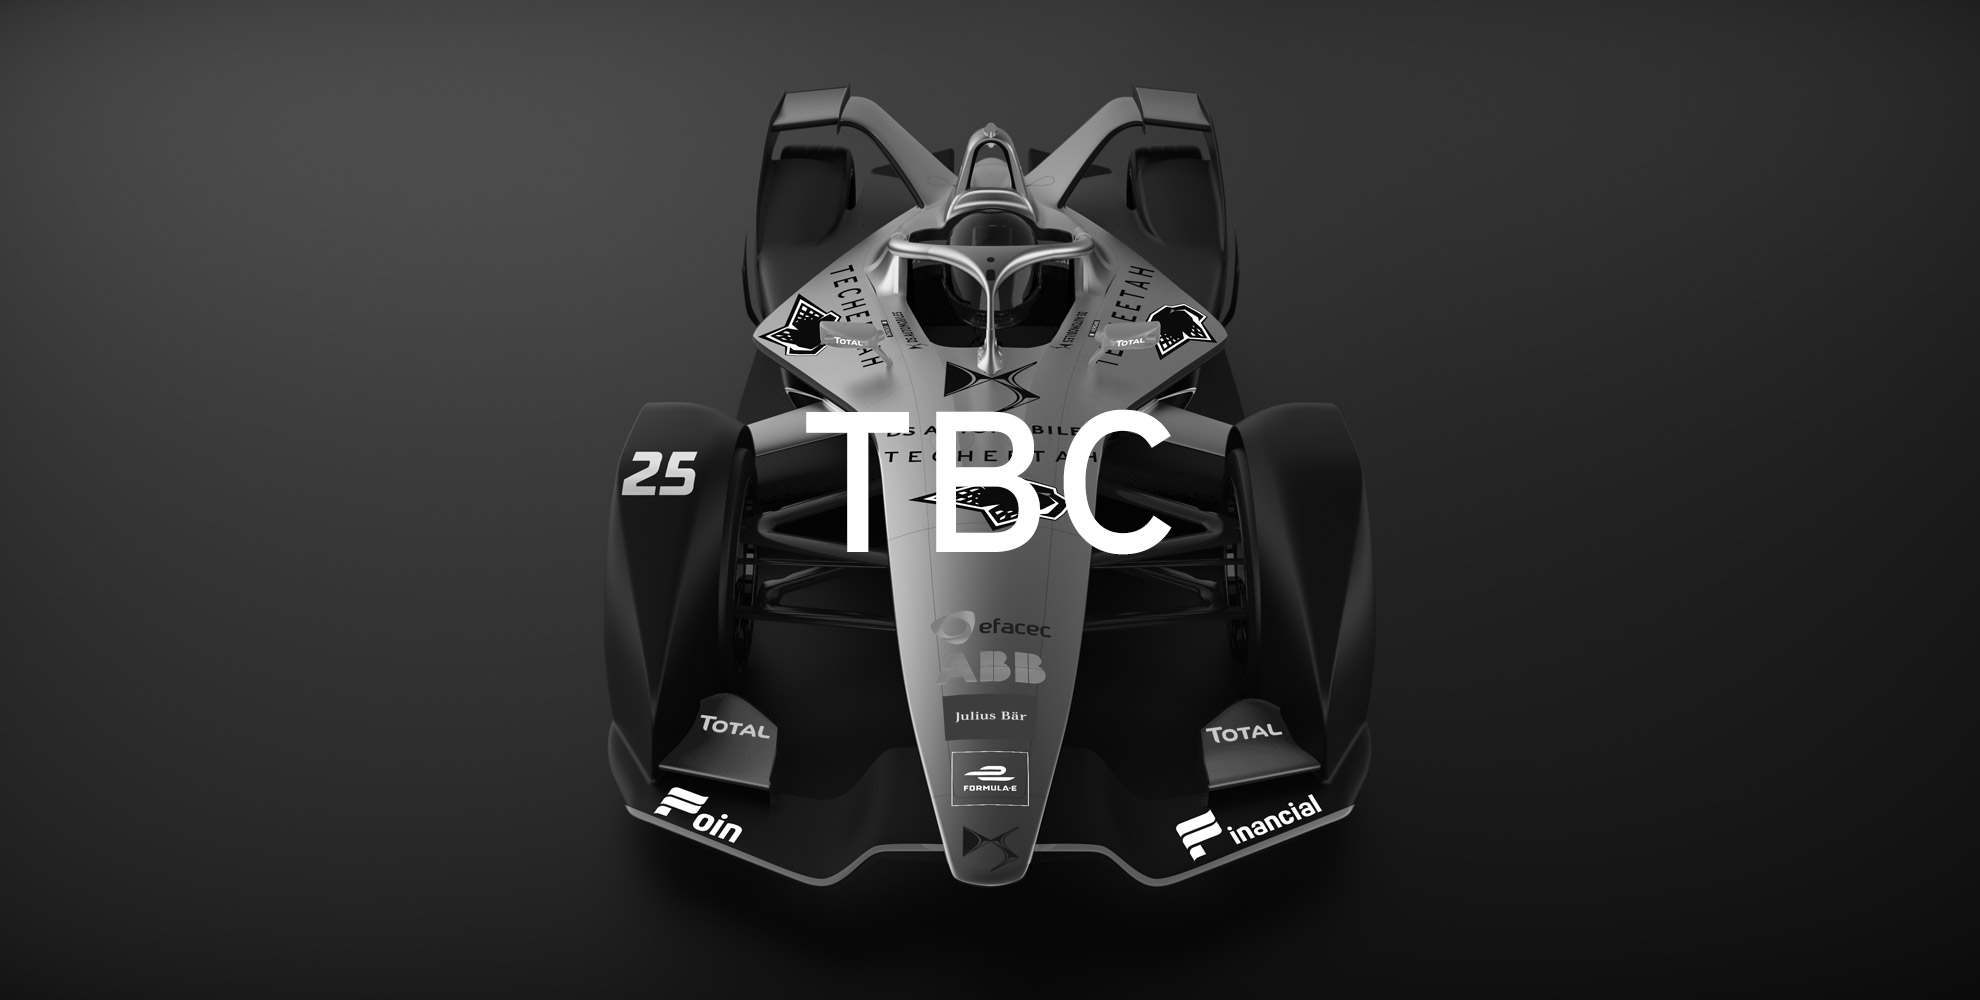 DS TECHEETAH Formula E track map coming soon placeholder